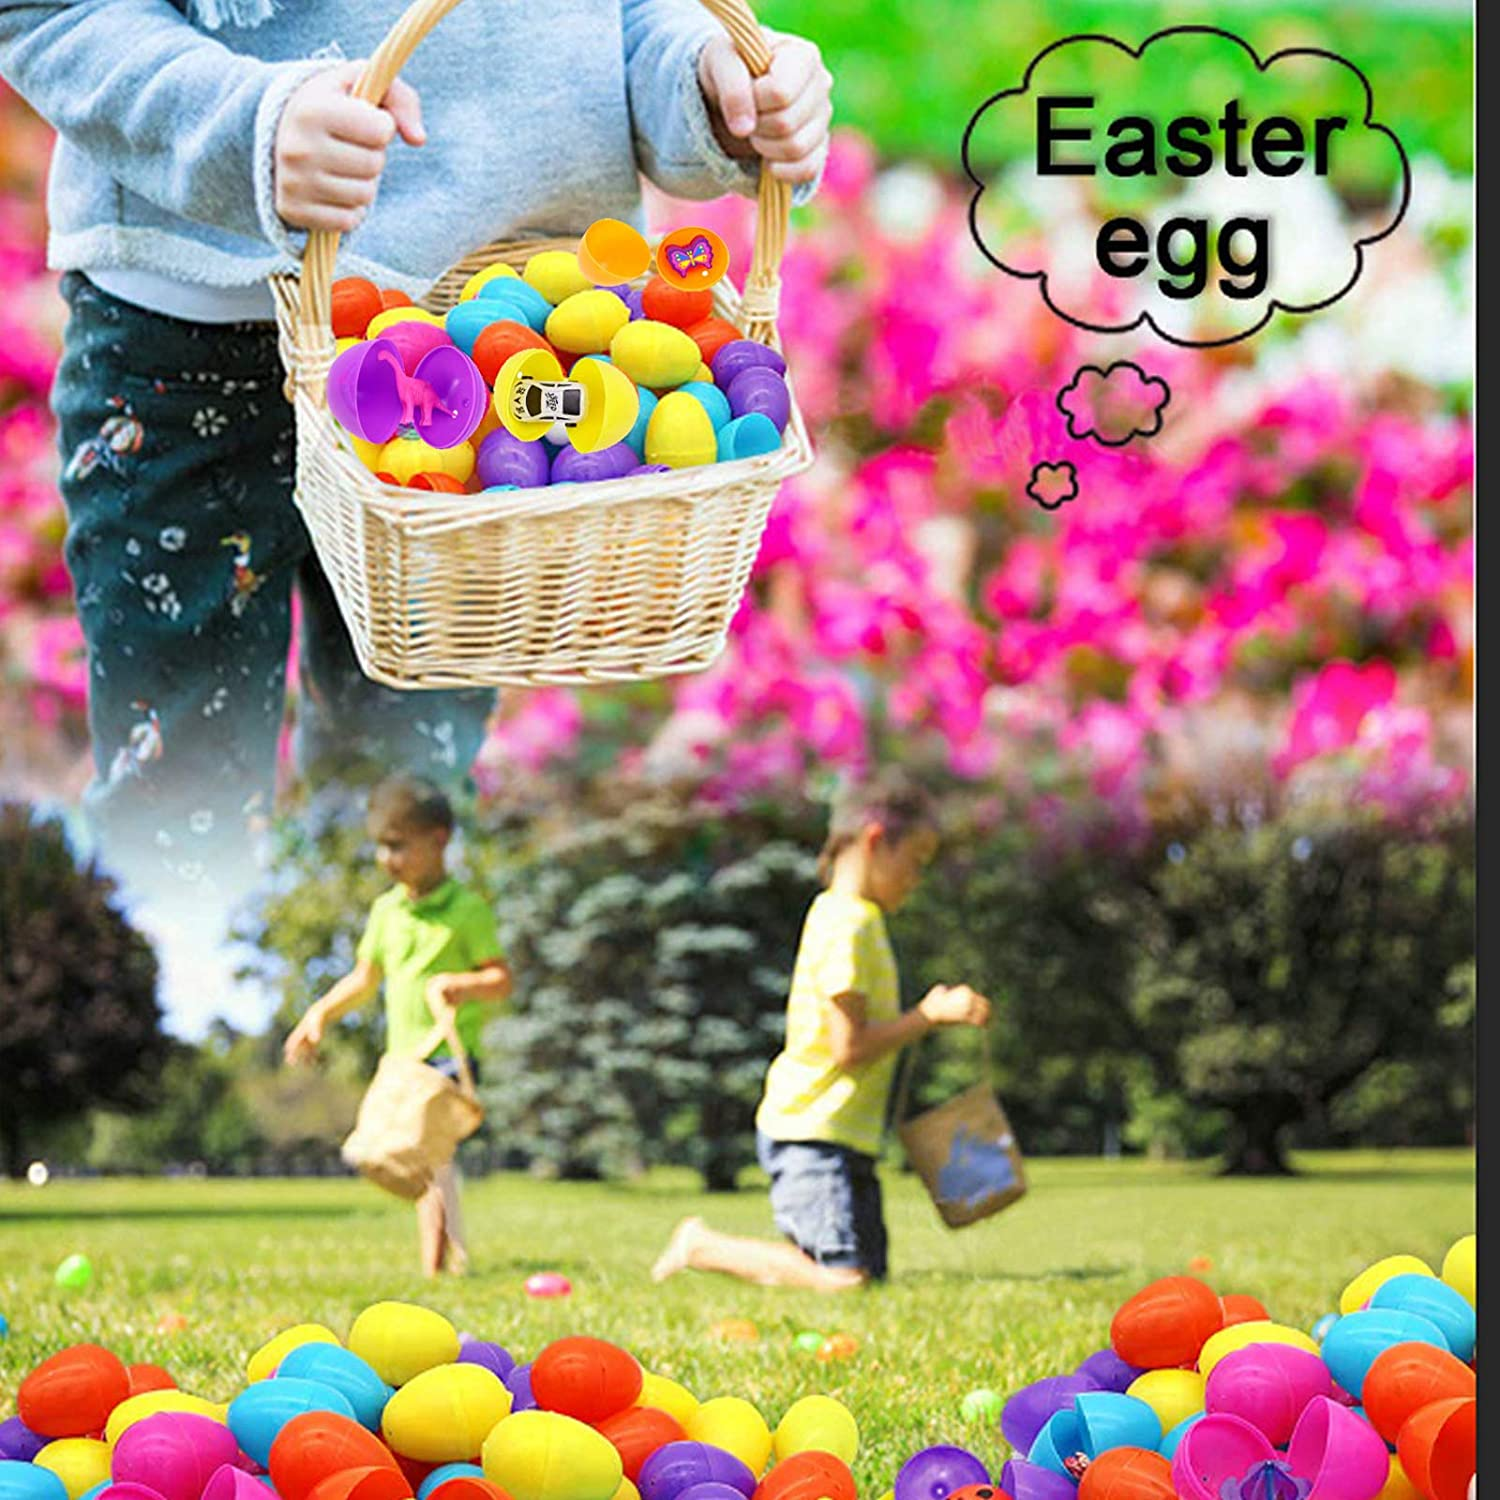 Each Perfect for Easter Egg Hunt Theme Party Favor Suitable for Kids Learning Educational Toys for Boys and Girls Easter Eggs Filled with 60 Pieces 2 3//8 Different Kinds of Surprise Plastic Eggs with Toys Inside